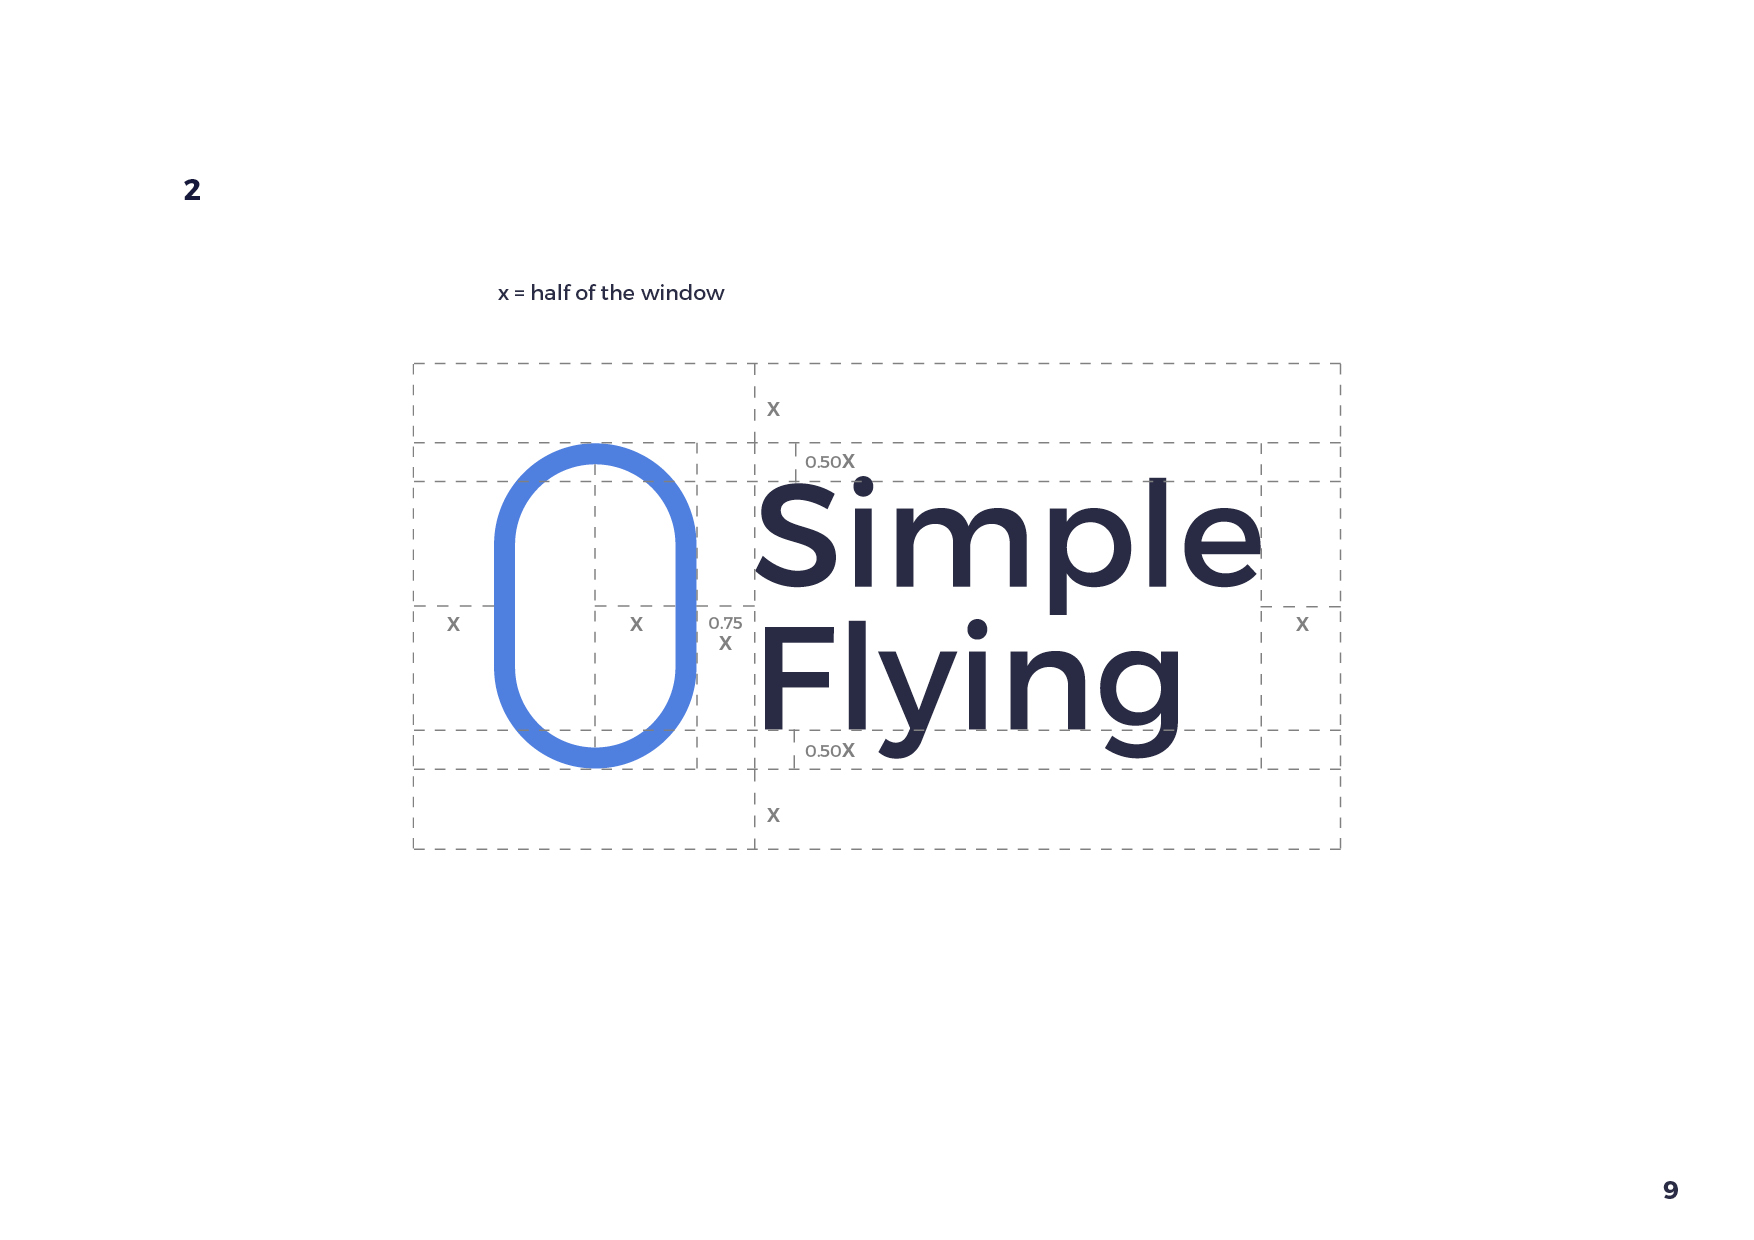 Work-SimpleFLying-ColourStyle-019.jpg